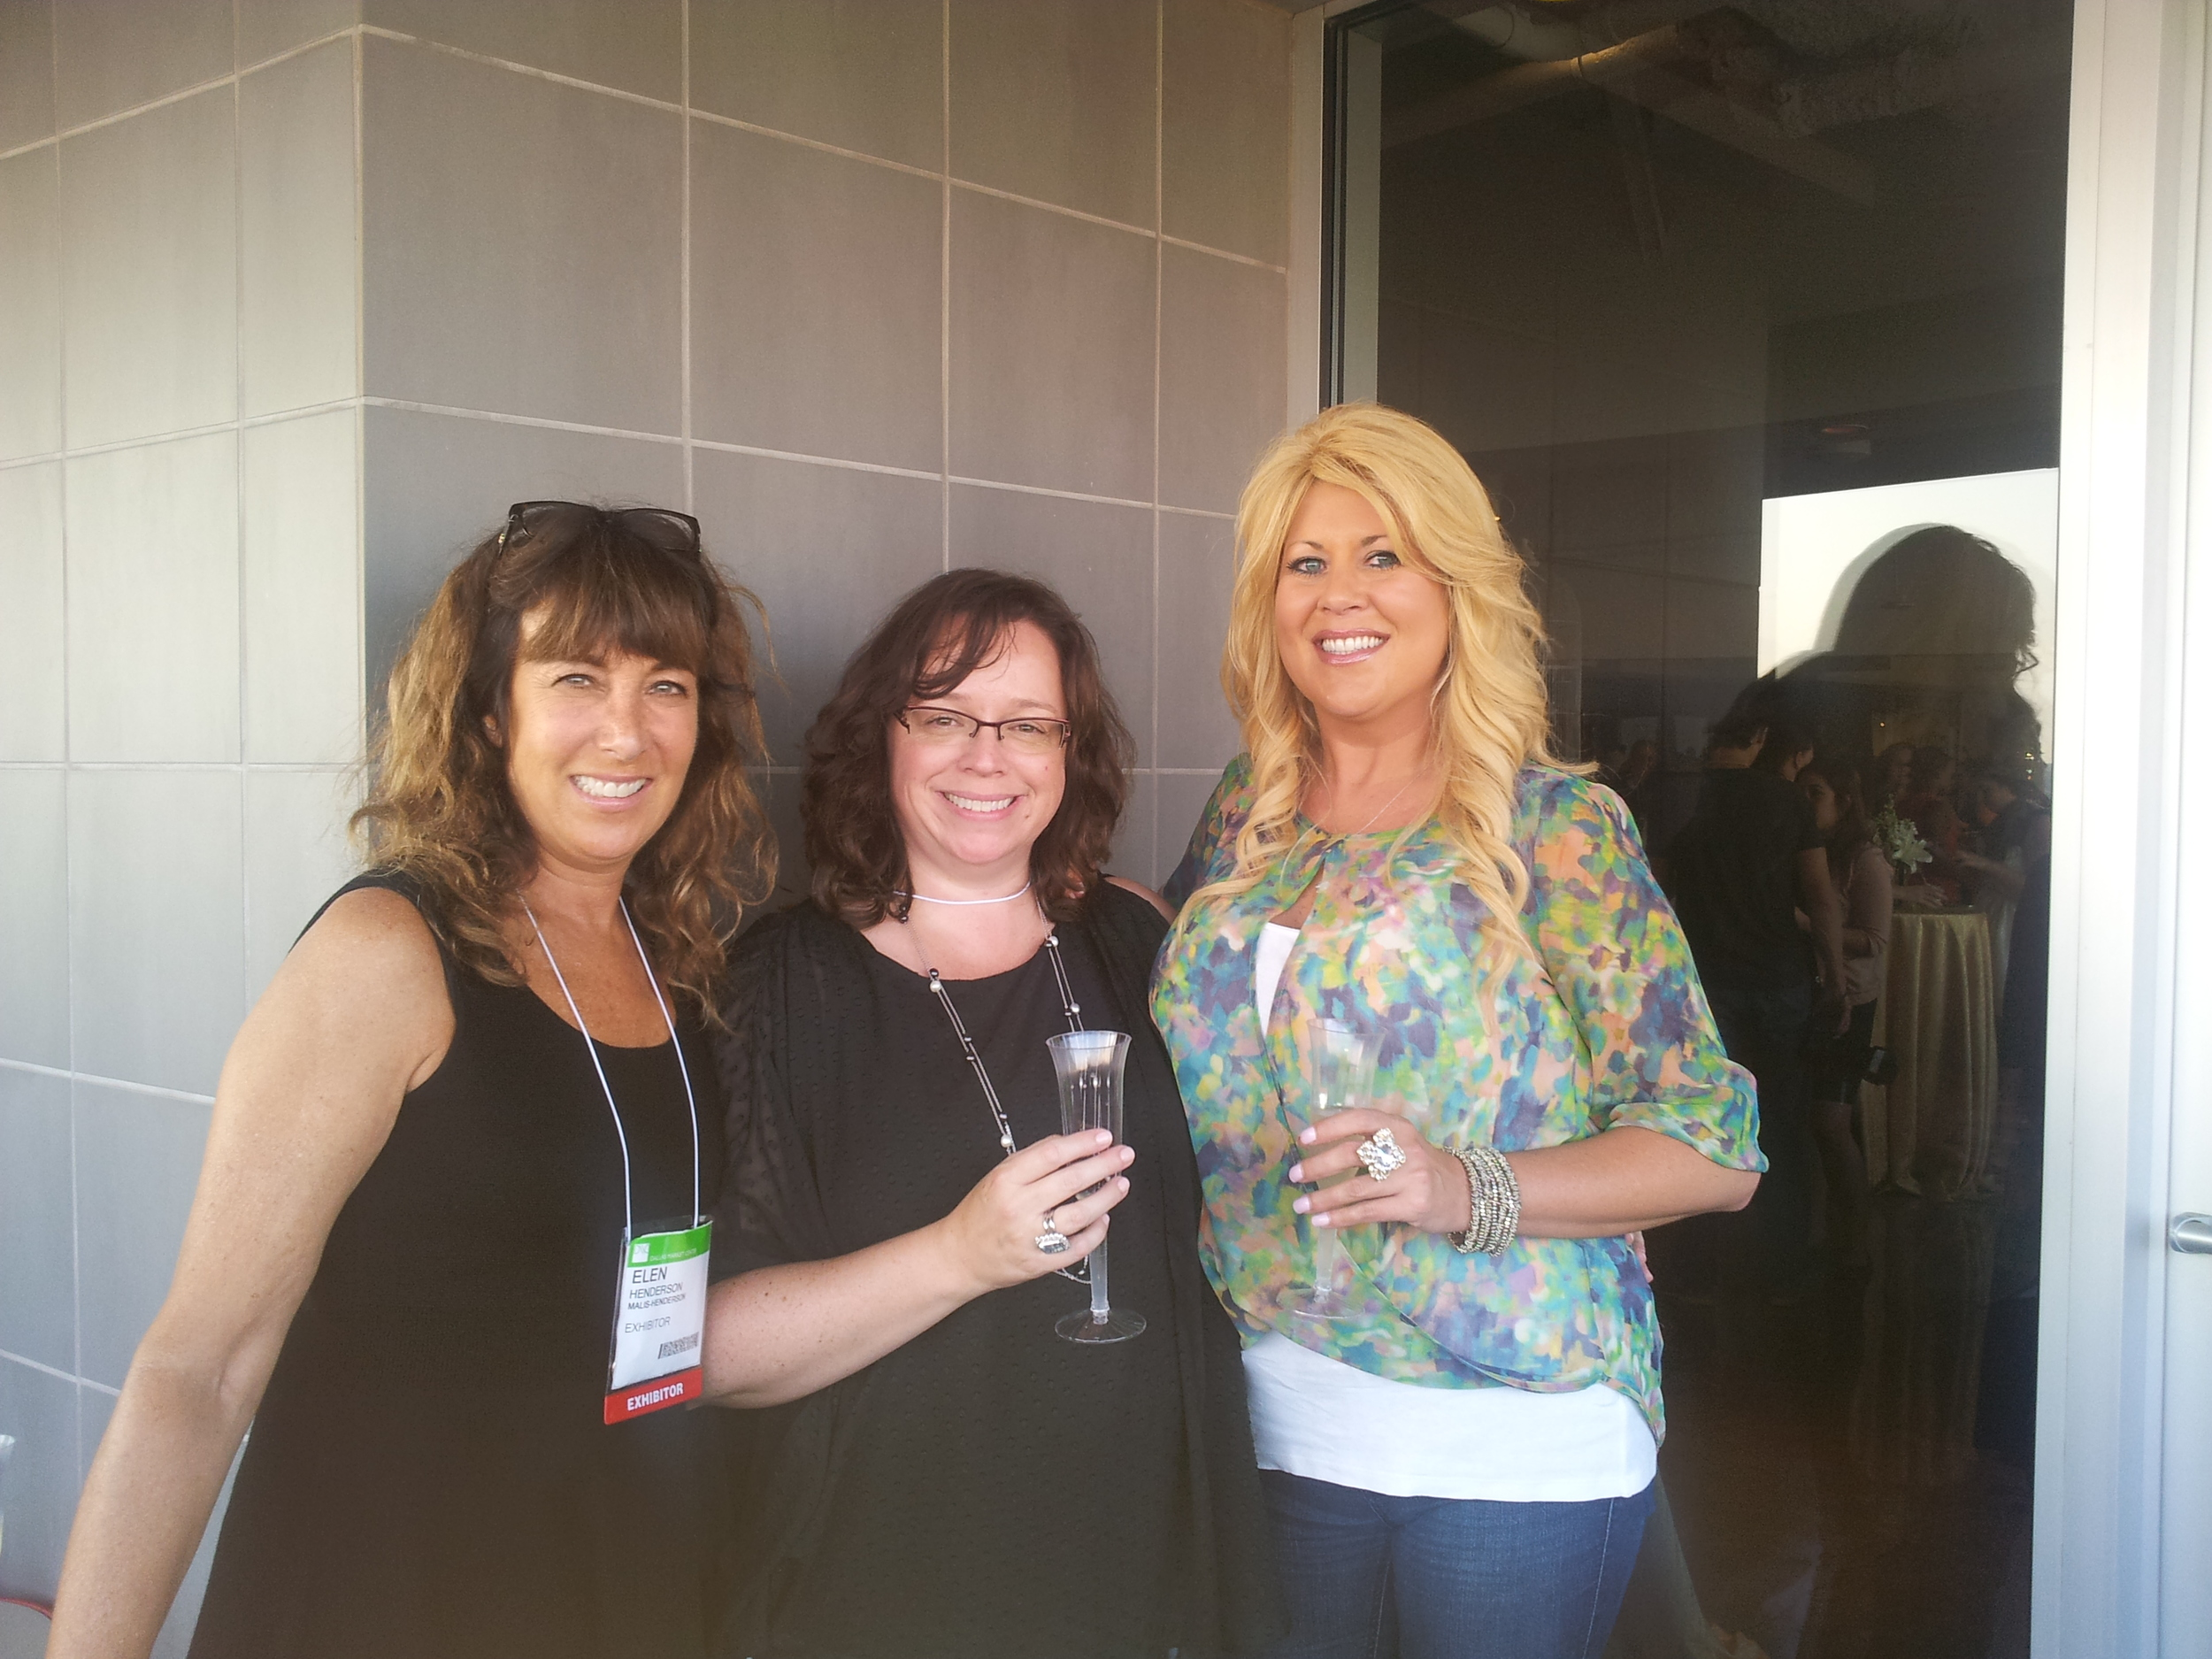 Elen and Nicole from Malis-Henderson with Rebecca from Azarue's Bridal and Formal in Bossier City, Louisiana  http://www.azarues.com/    This is a morning pic from the Dallas Bridal Market, so those must be mimosa cocktails !